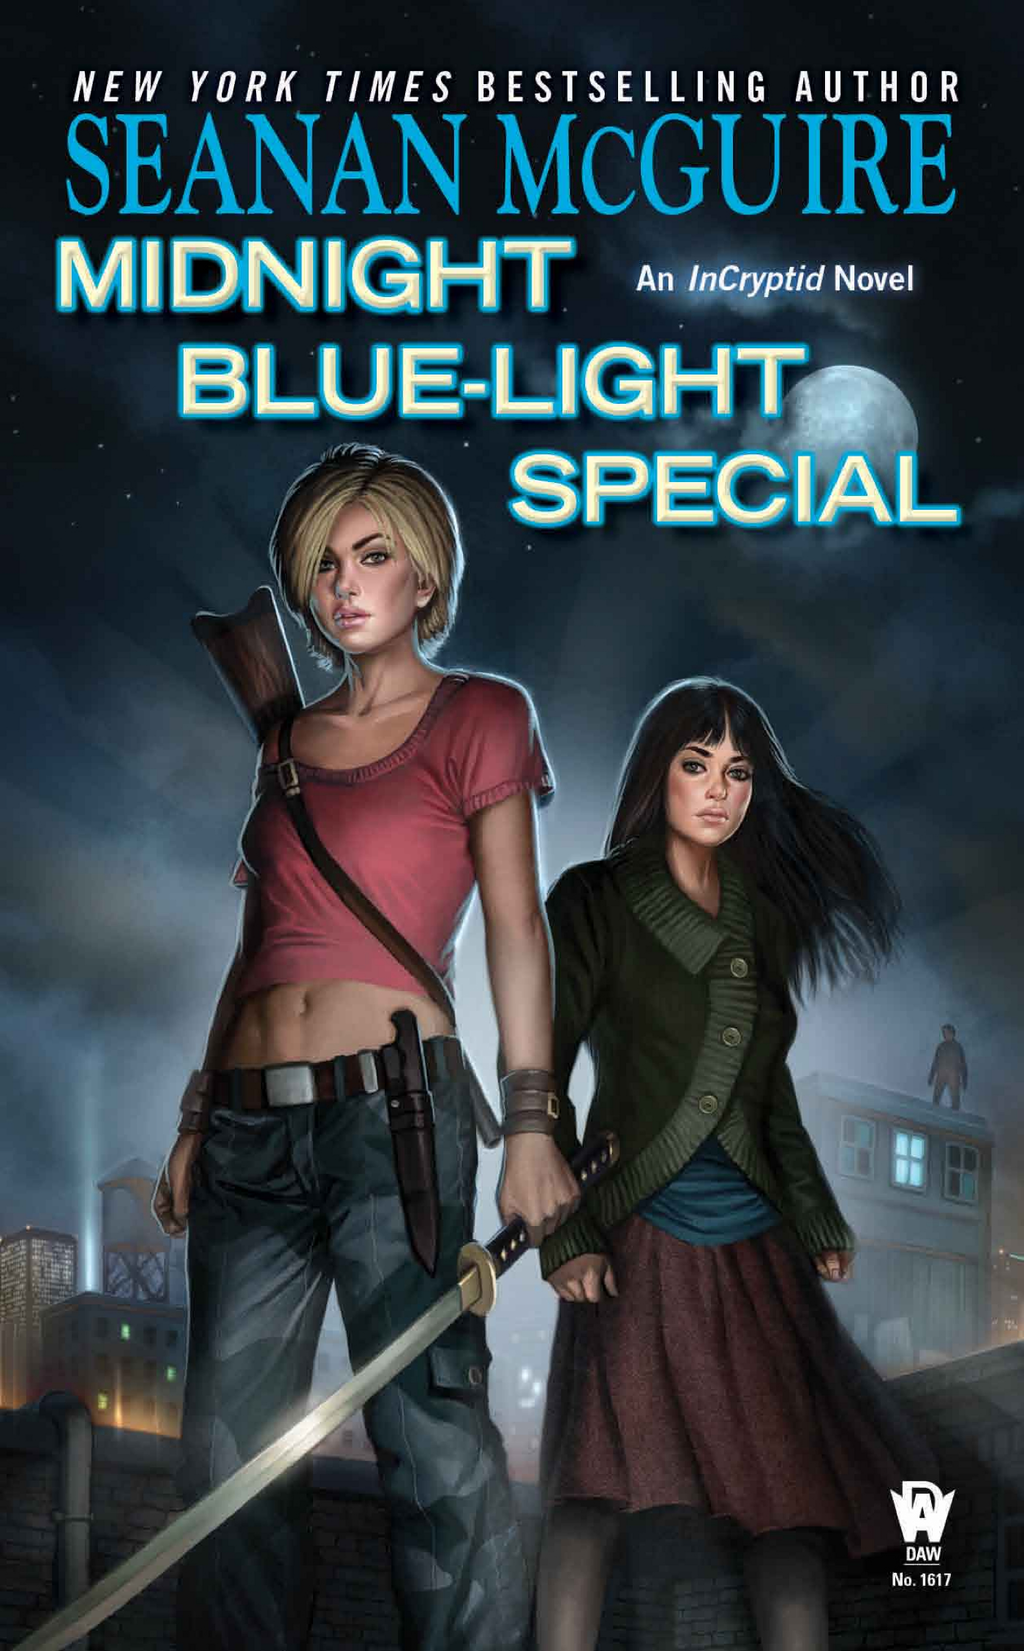 Midnight Blue-Light Special By: Seanan McGuire